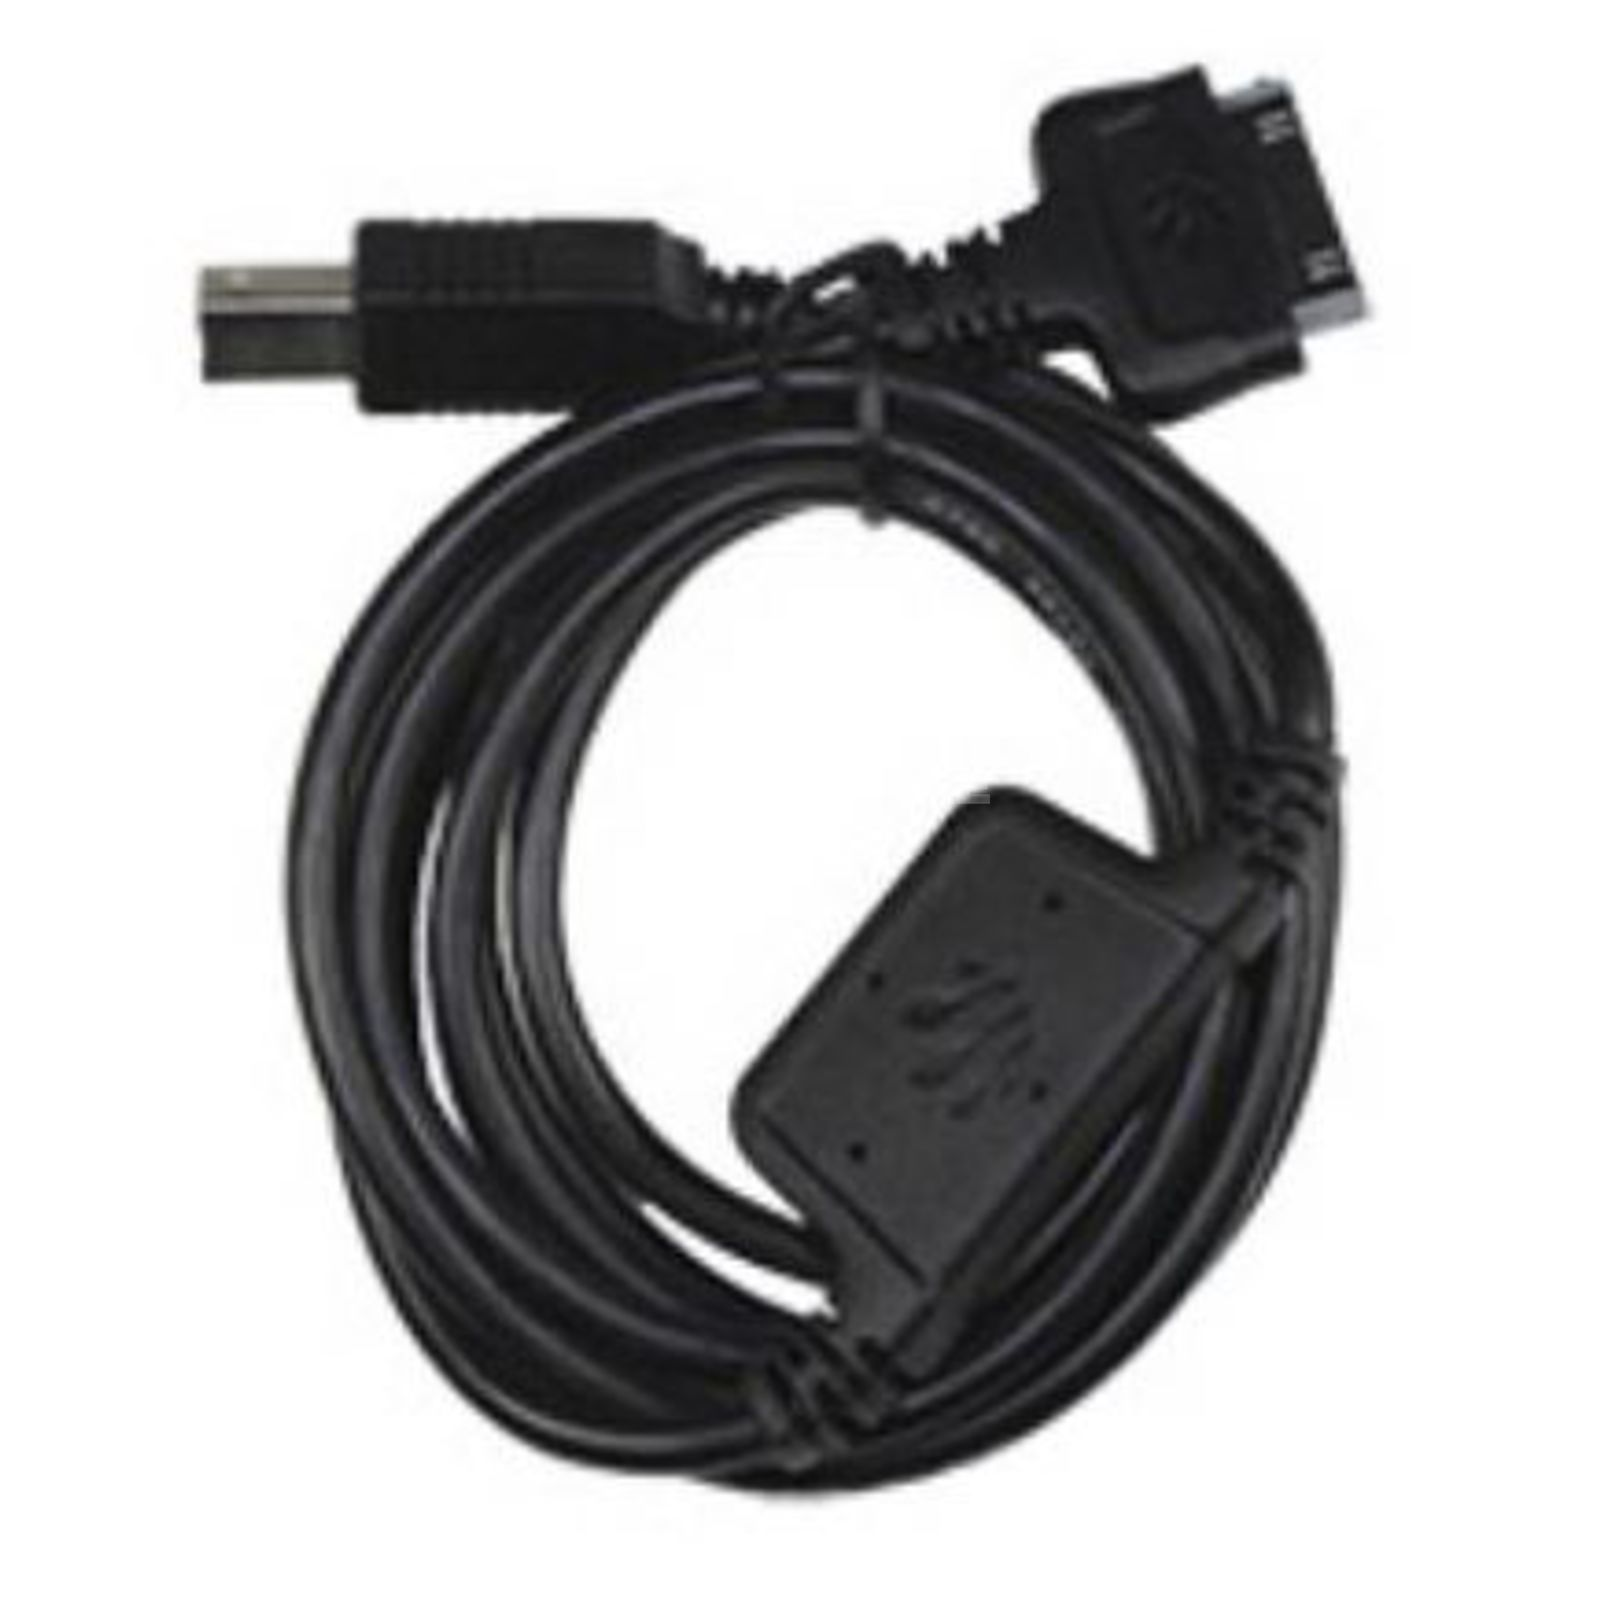 iConnectivity 30 pin IOS Cable for MIDI2+/4+  Produktbillede